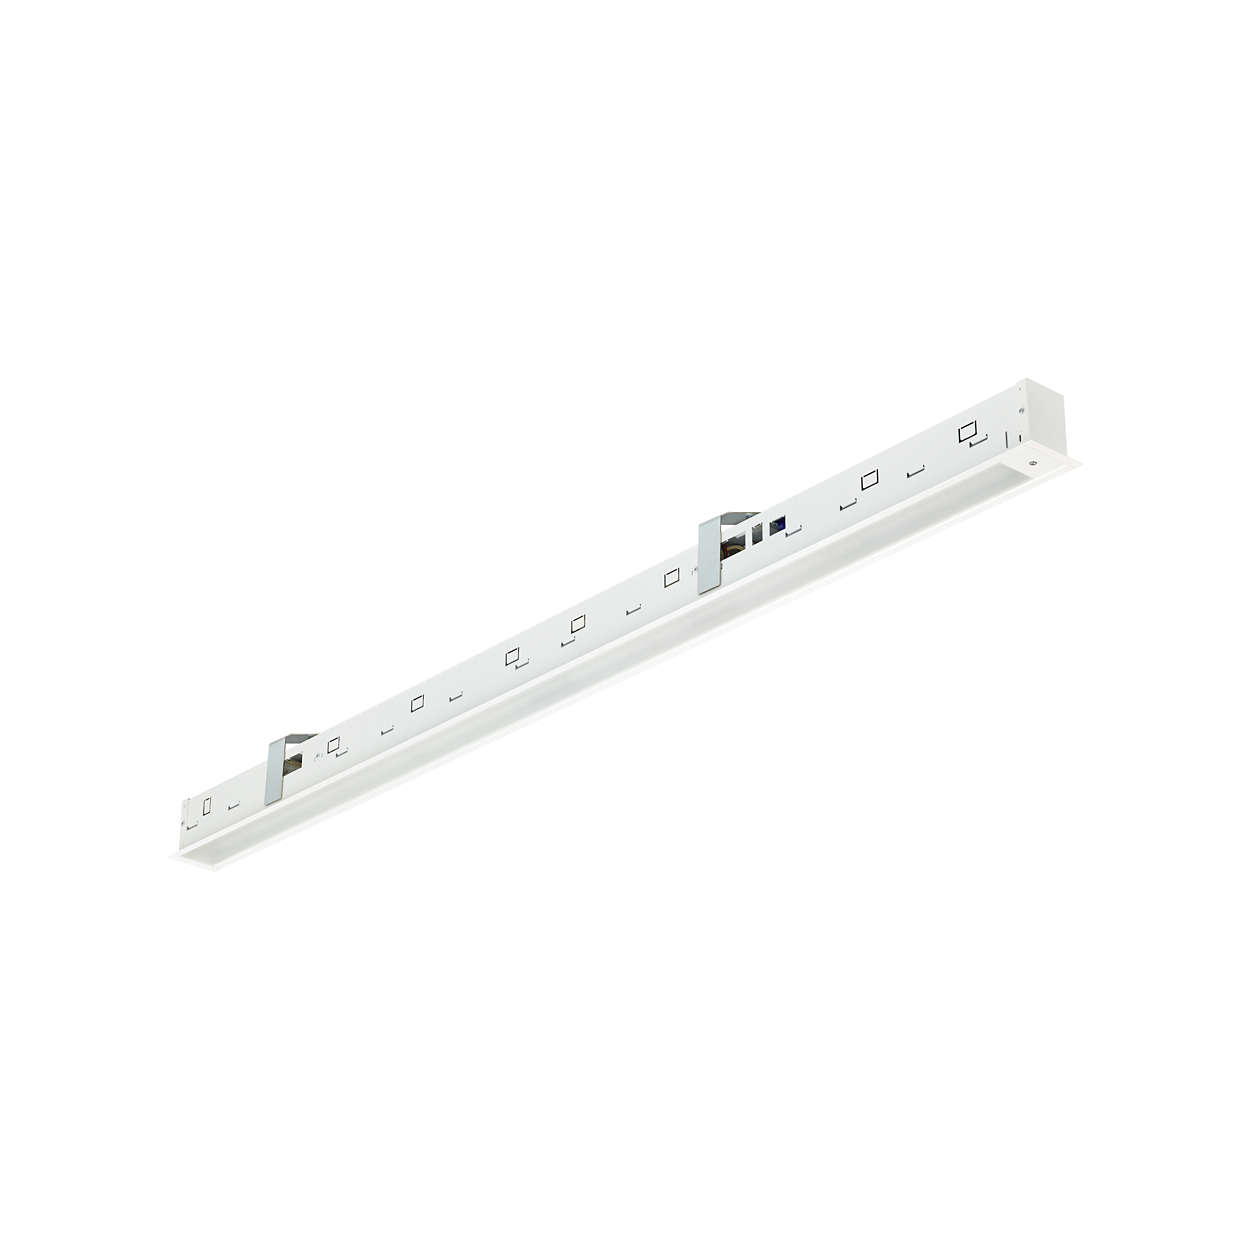 TrueLine, recessed – True line of light: elegant, energy-efficient and compliant with office lighting norms